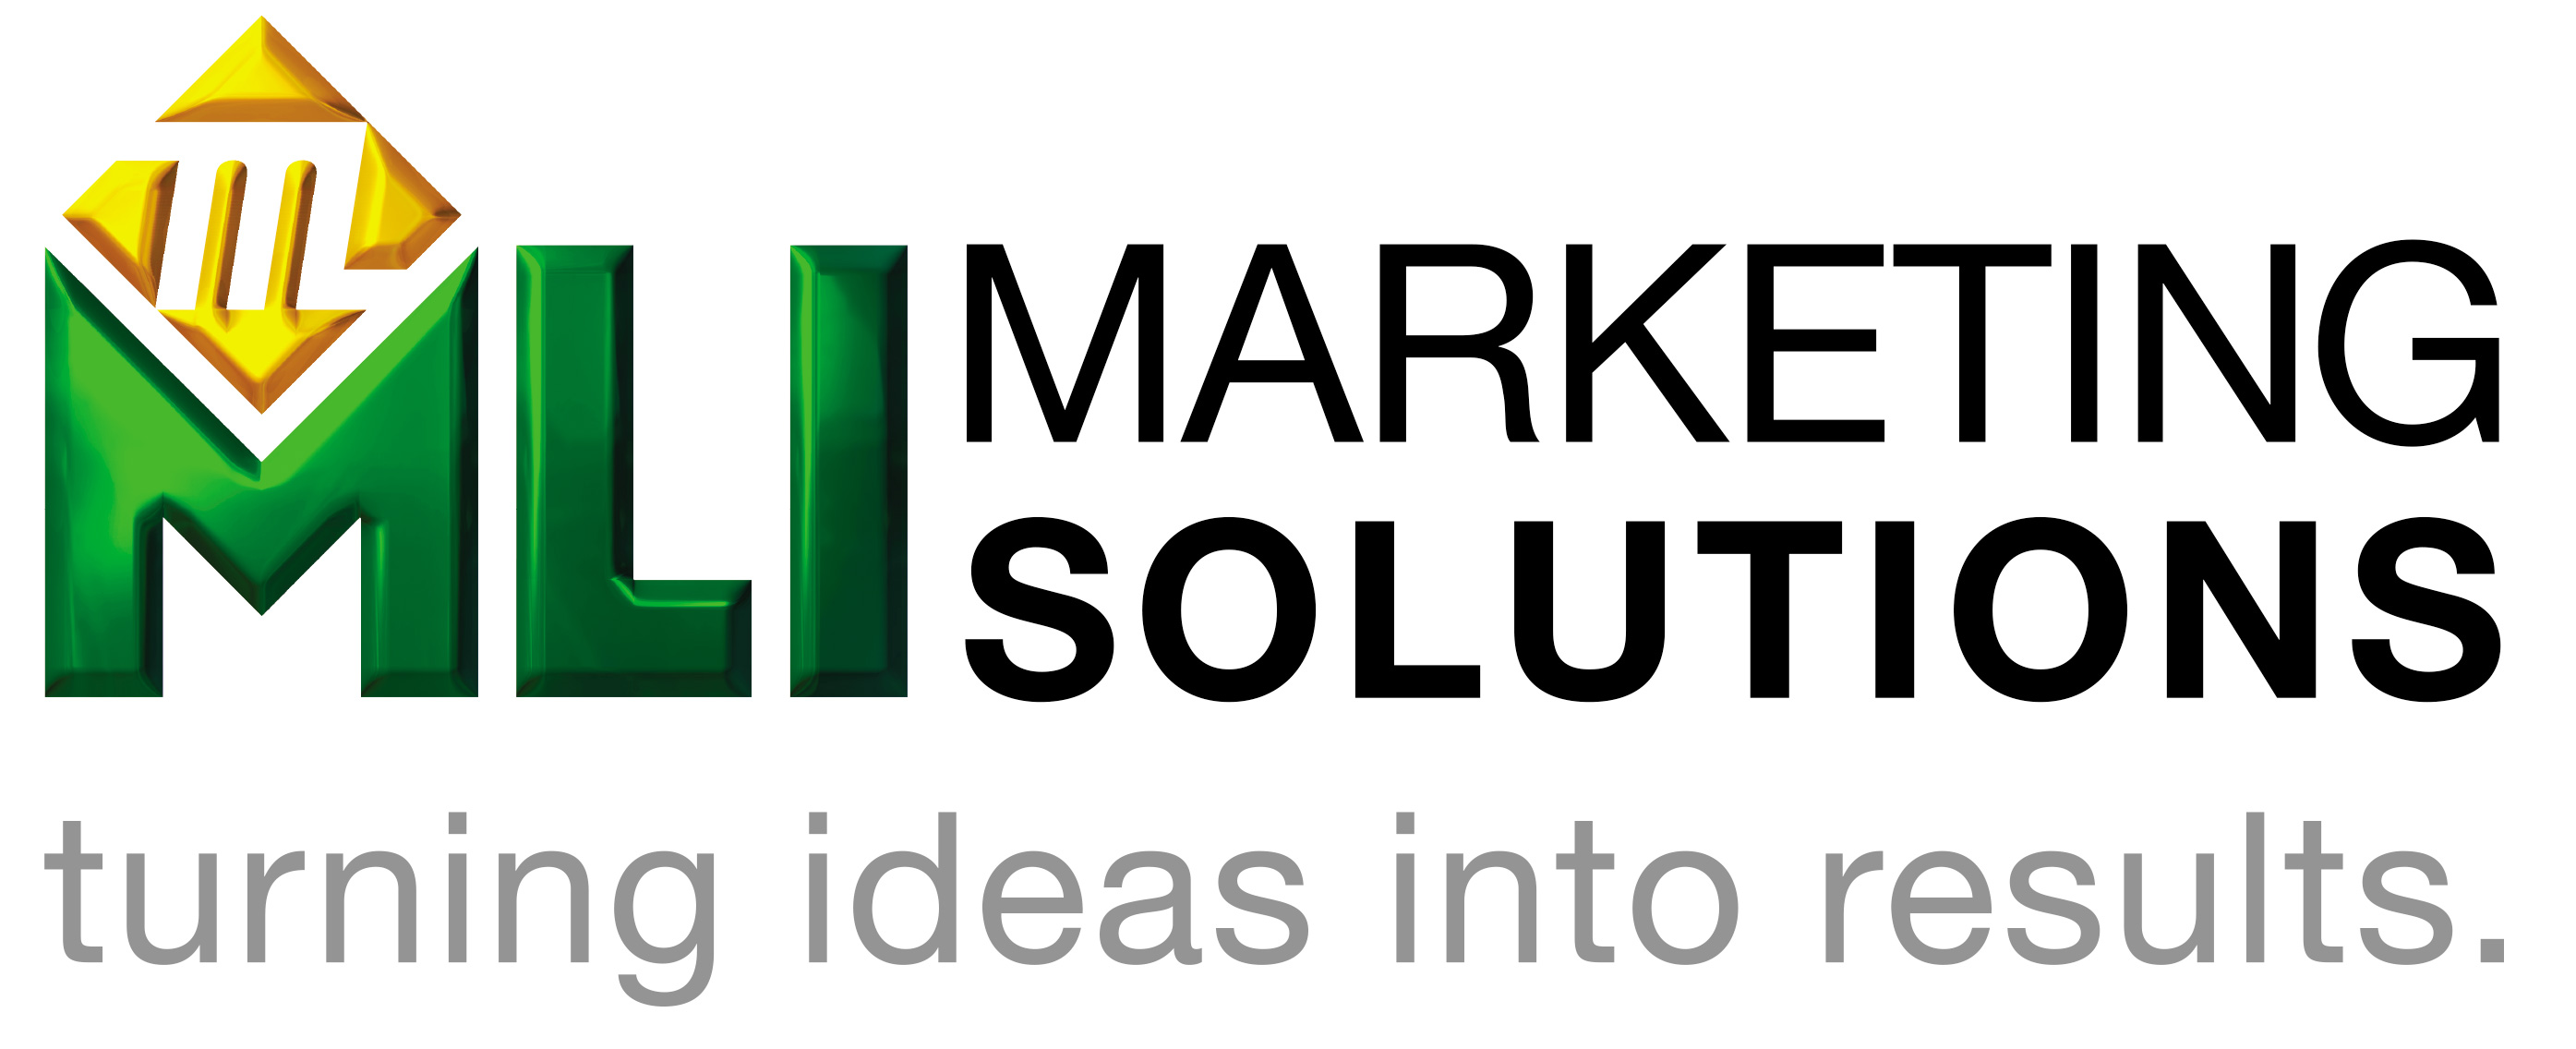 MLI Marketing Solutions